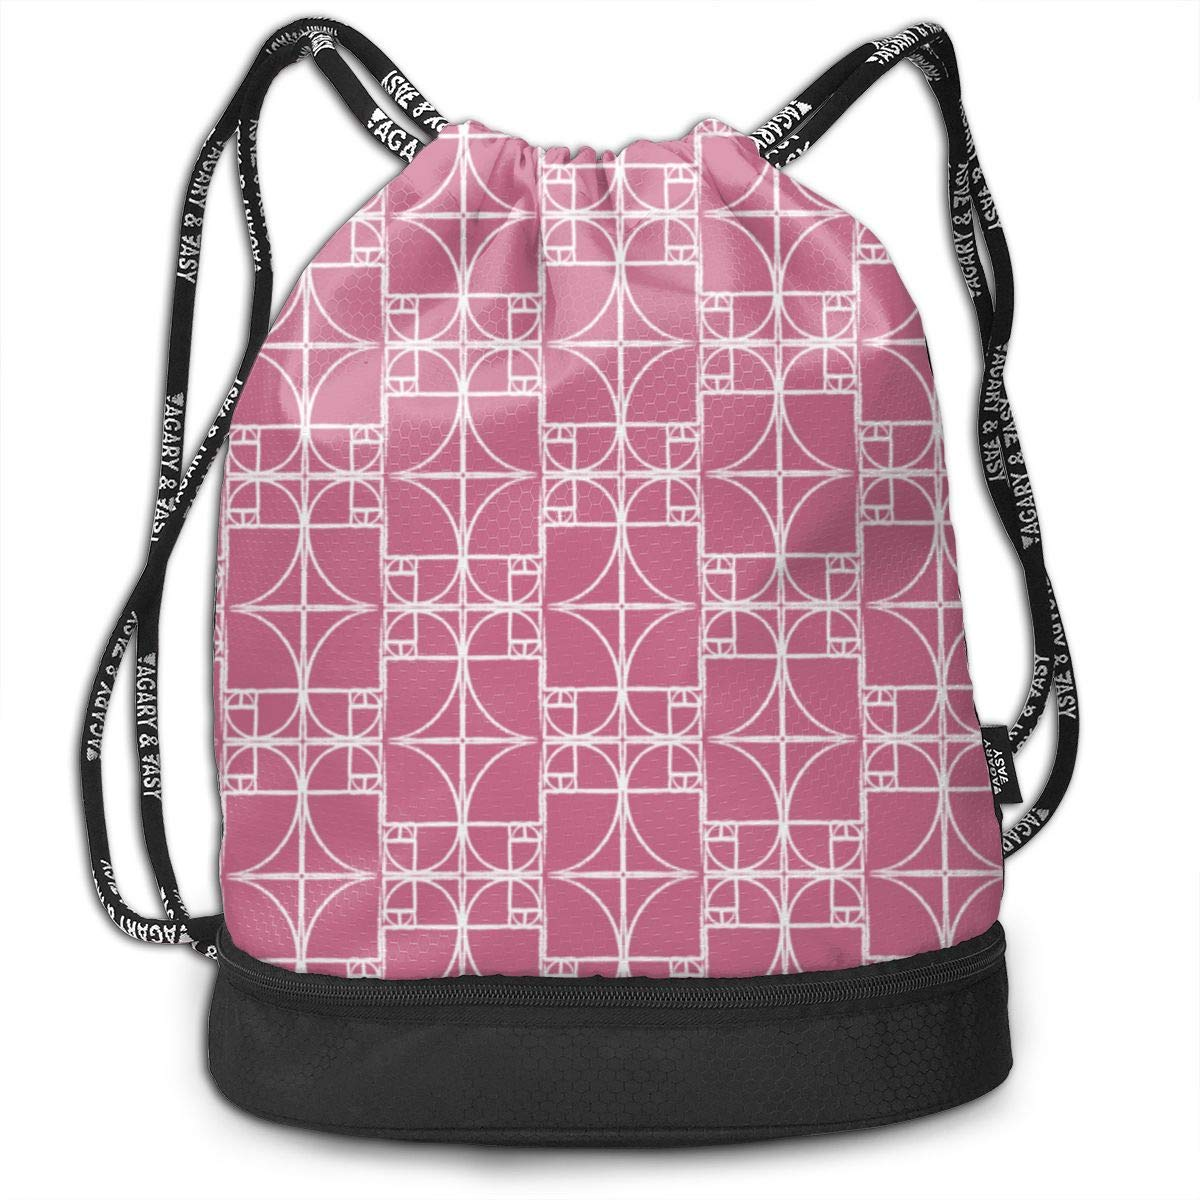 Orchid Fibonacci Spiral Drawstring Backpack Sports Athletic Gym Cinch Sack String Storage Bags for Hiking Travel Beach